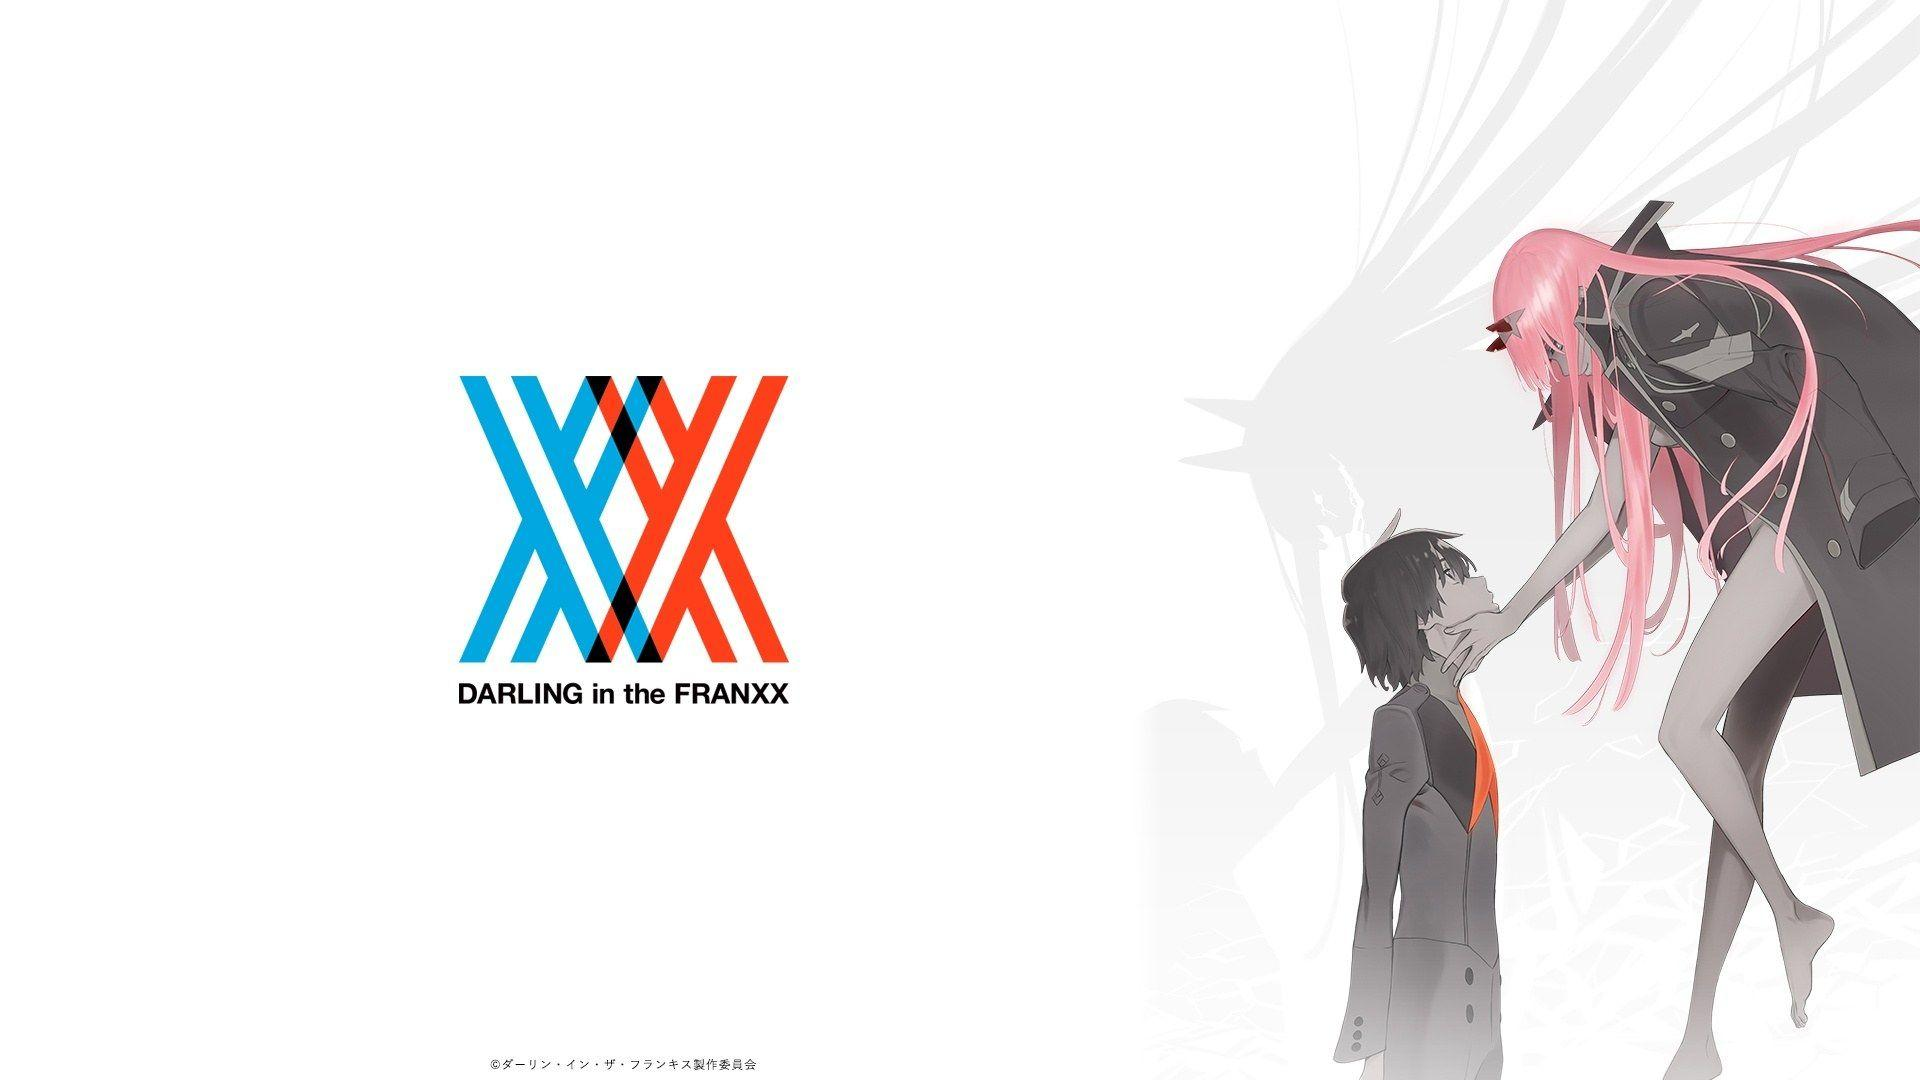 These Darling in the FranXX wallpapers are amazing : anime